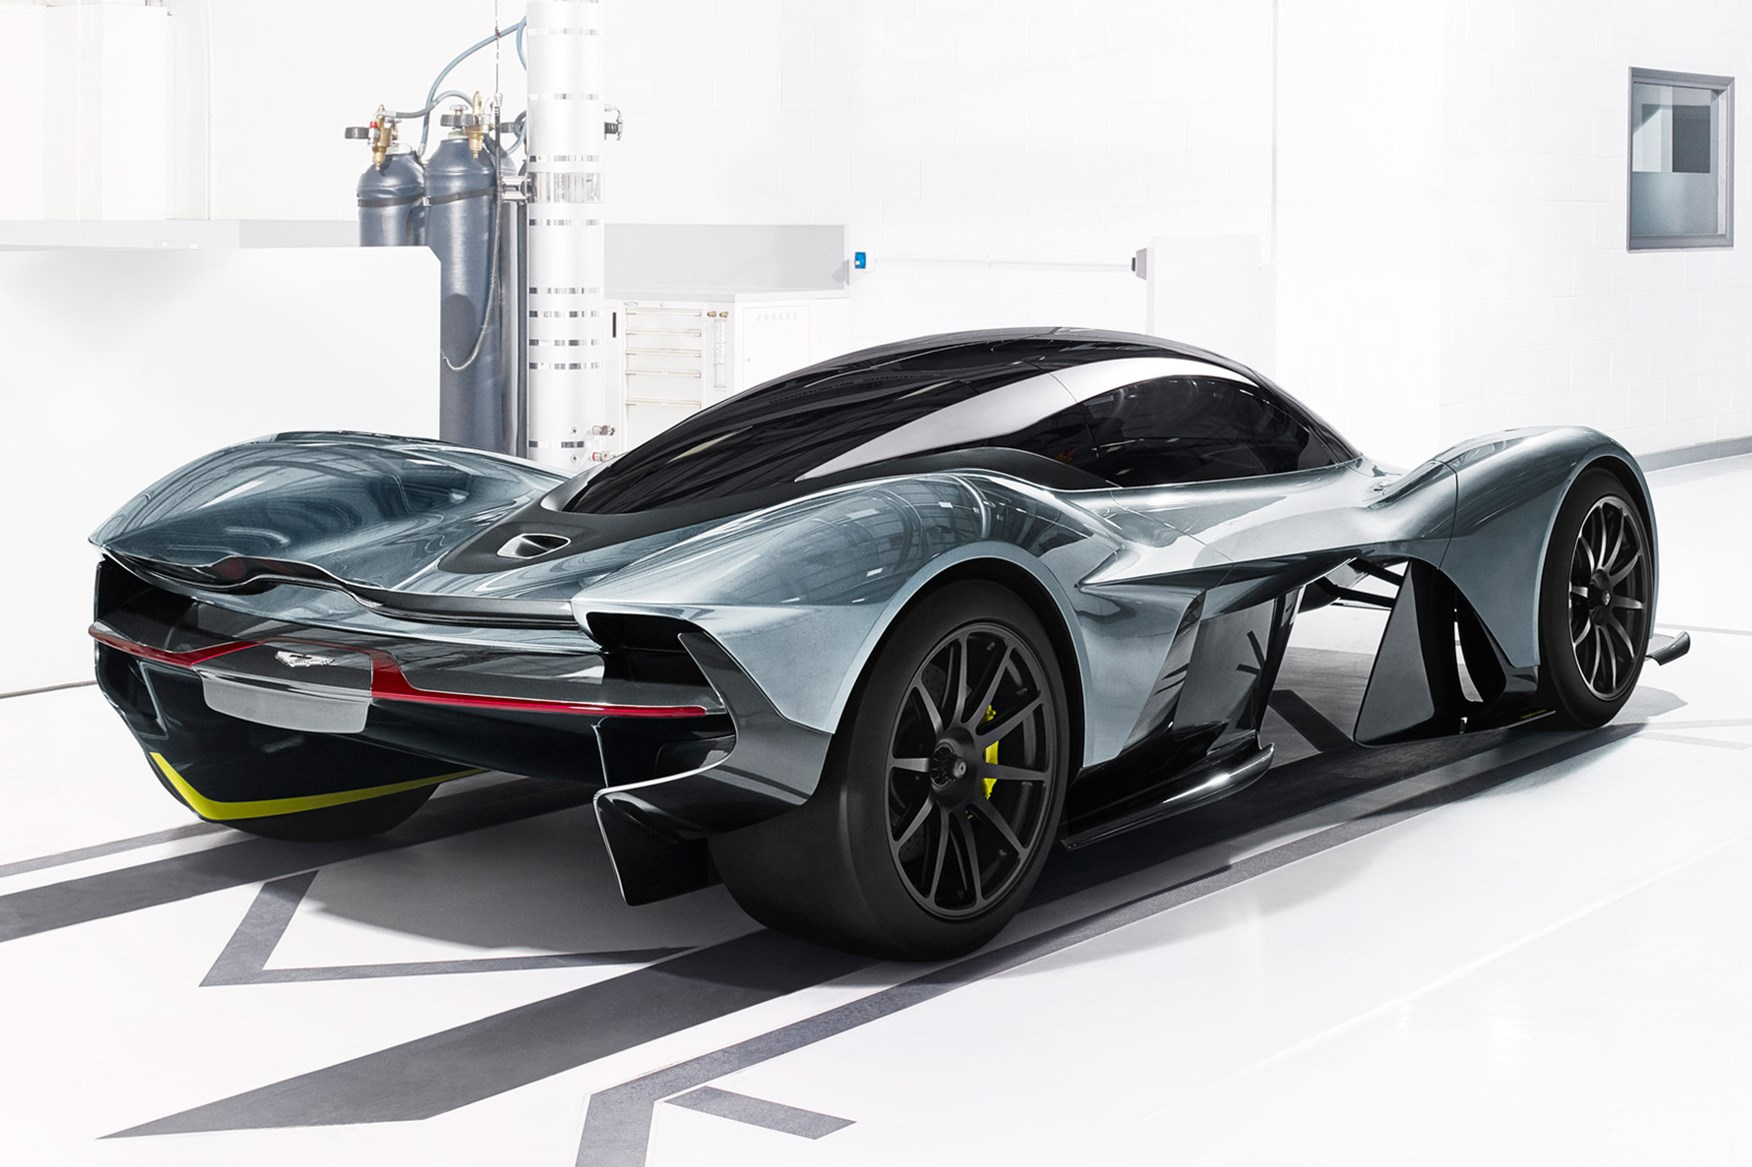 ride of the valkyrie aston martin reveals hypercar s tweaked design by car magazine